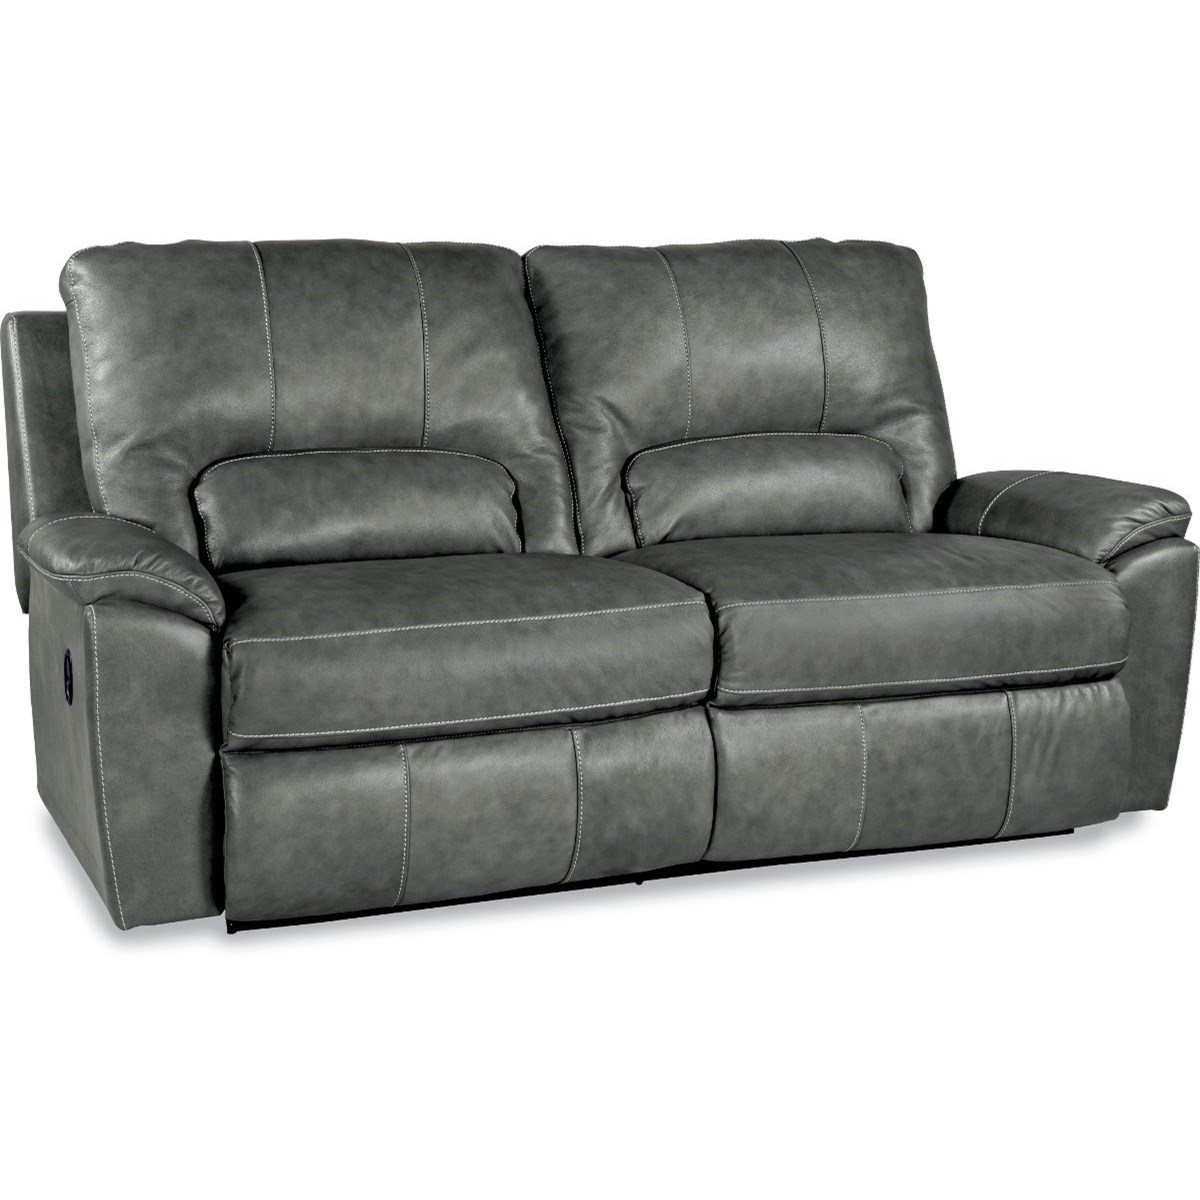 Power La Z Time Two Seat Reclining Sofa With Wide Seats And USB Ports